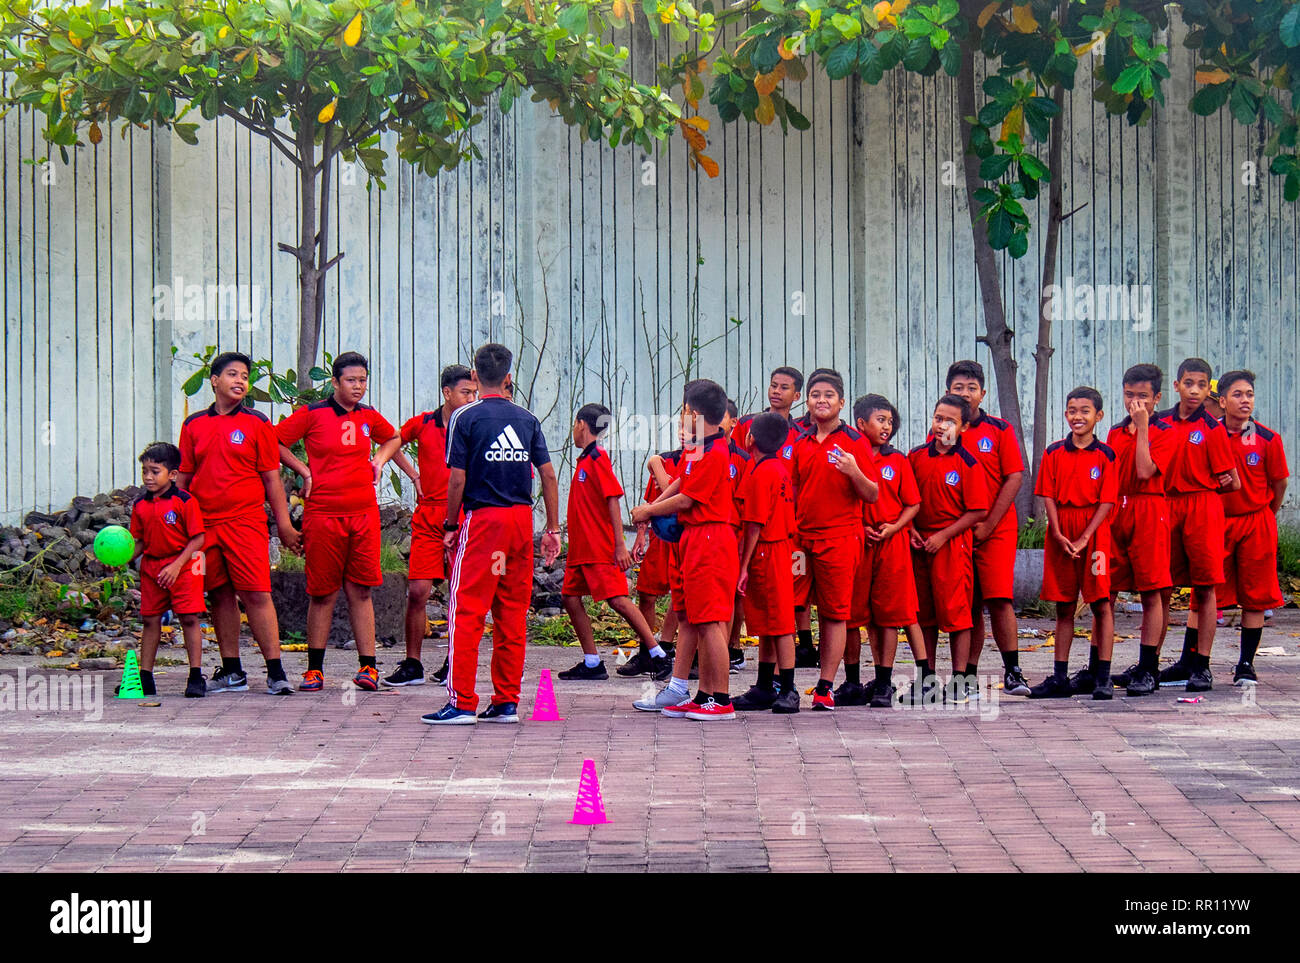 Schoolchildren in red sports uniform  their teacher playing a ball game in Jimbaran Bay Bali Indonesia. - Stock Image